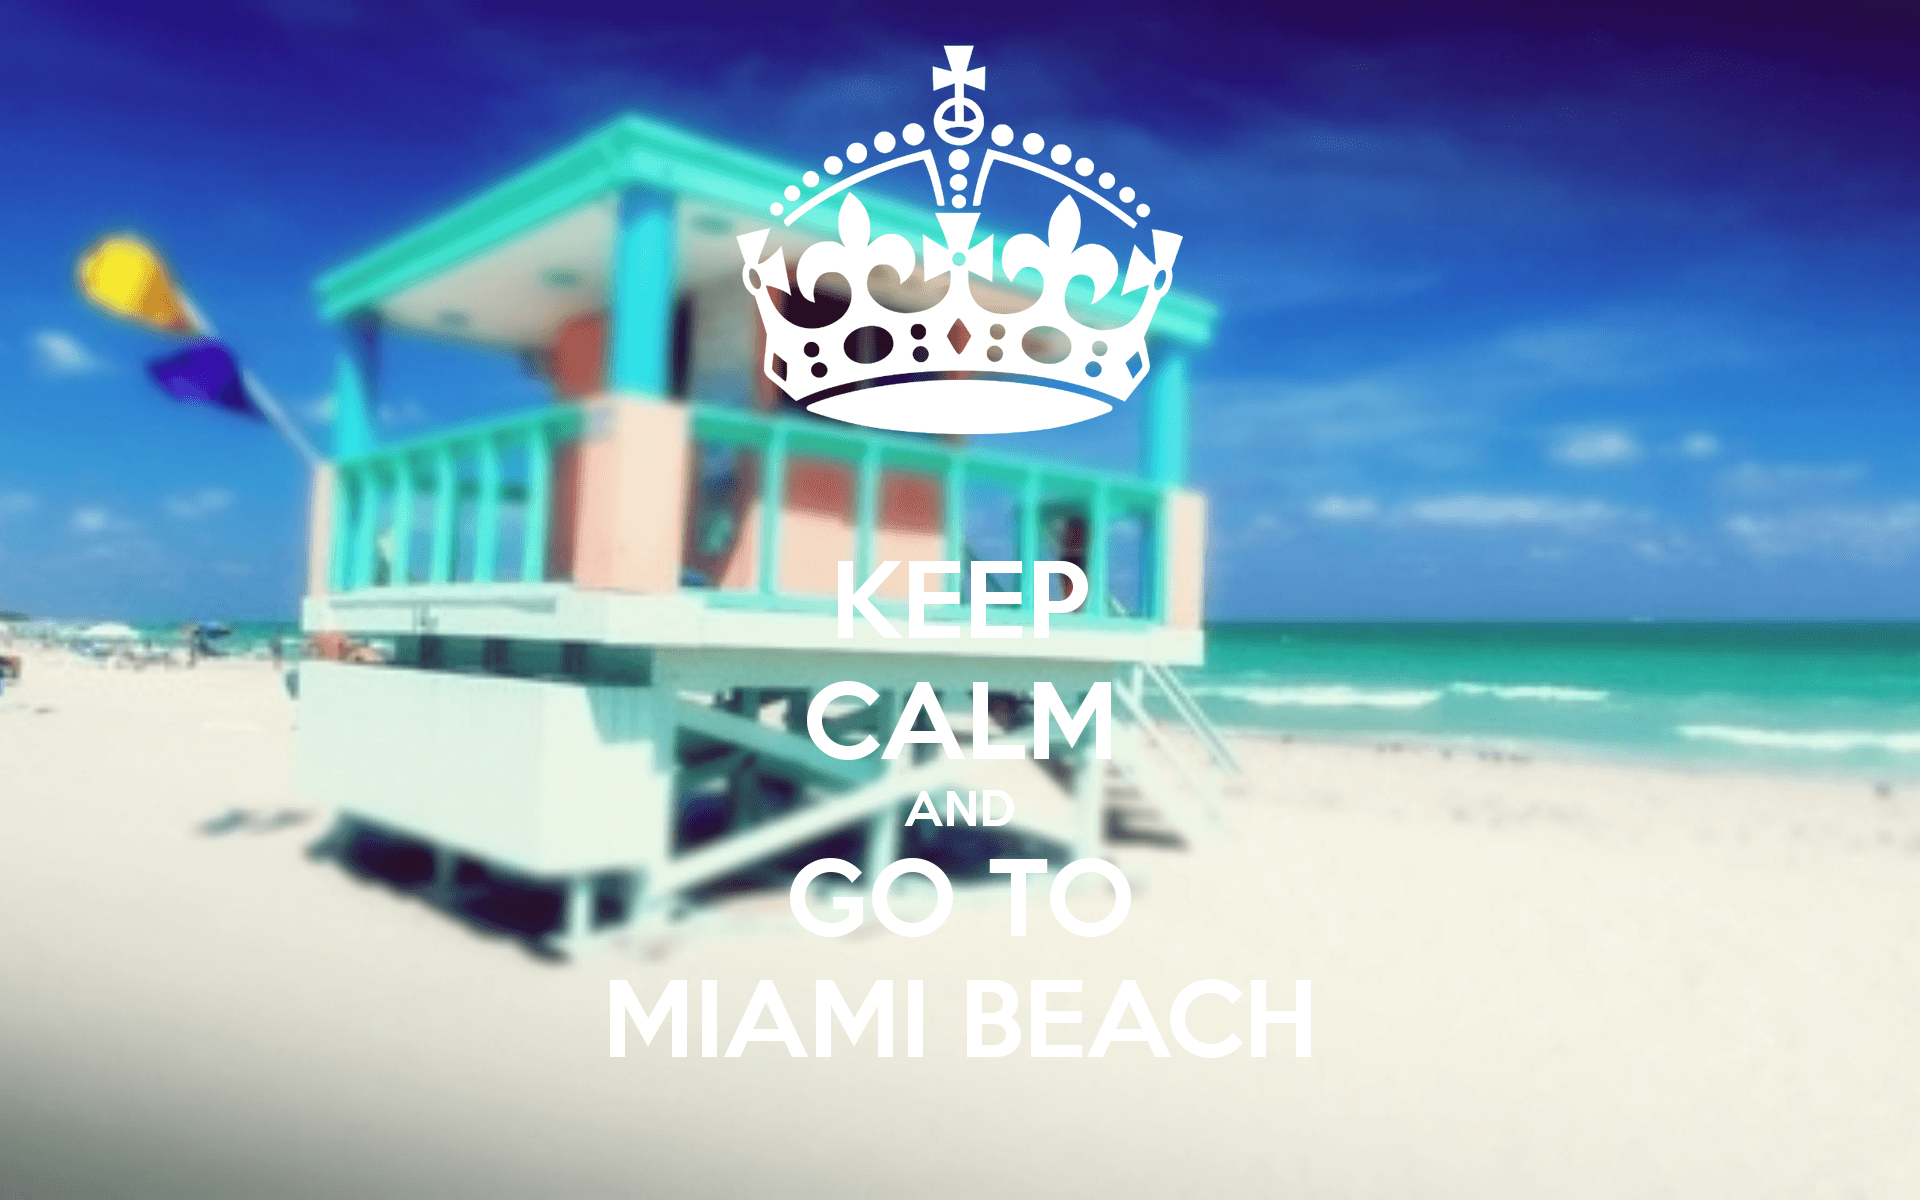 Miami Beach Wallpapers - Full HD wallpaper search - page 2